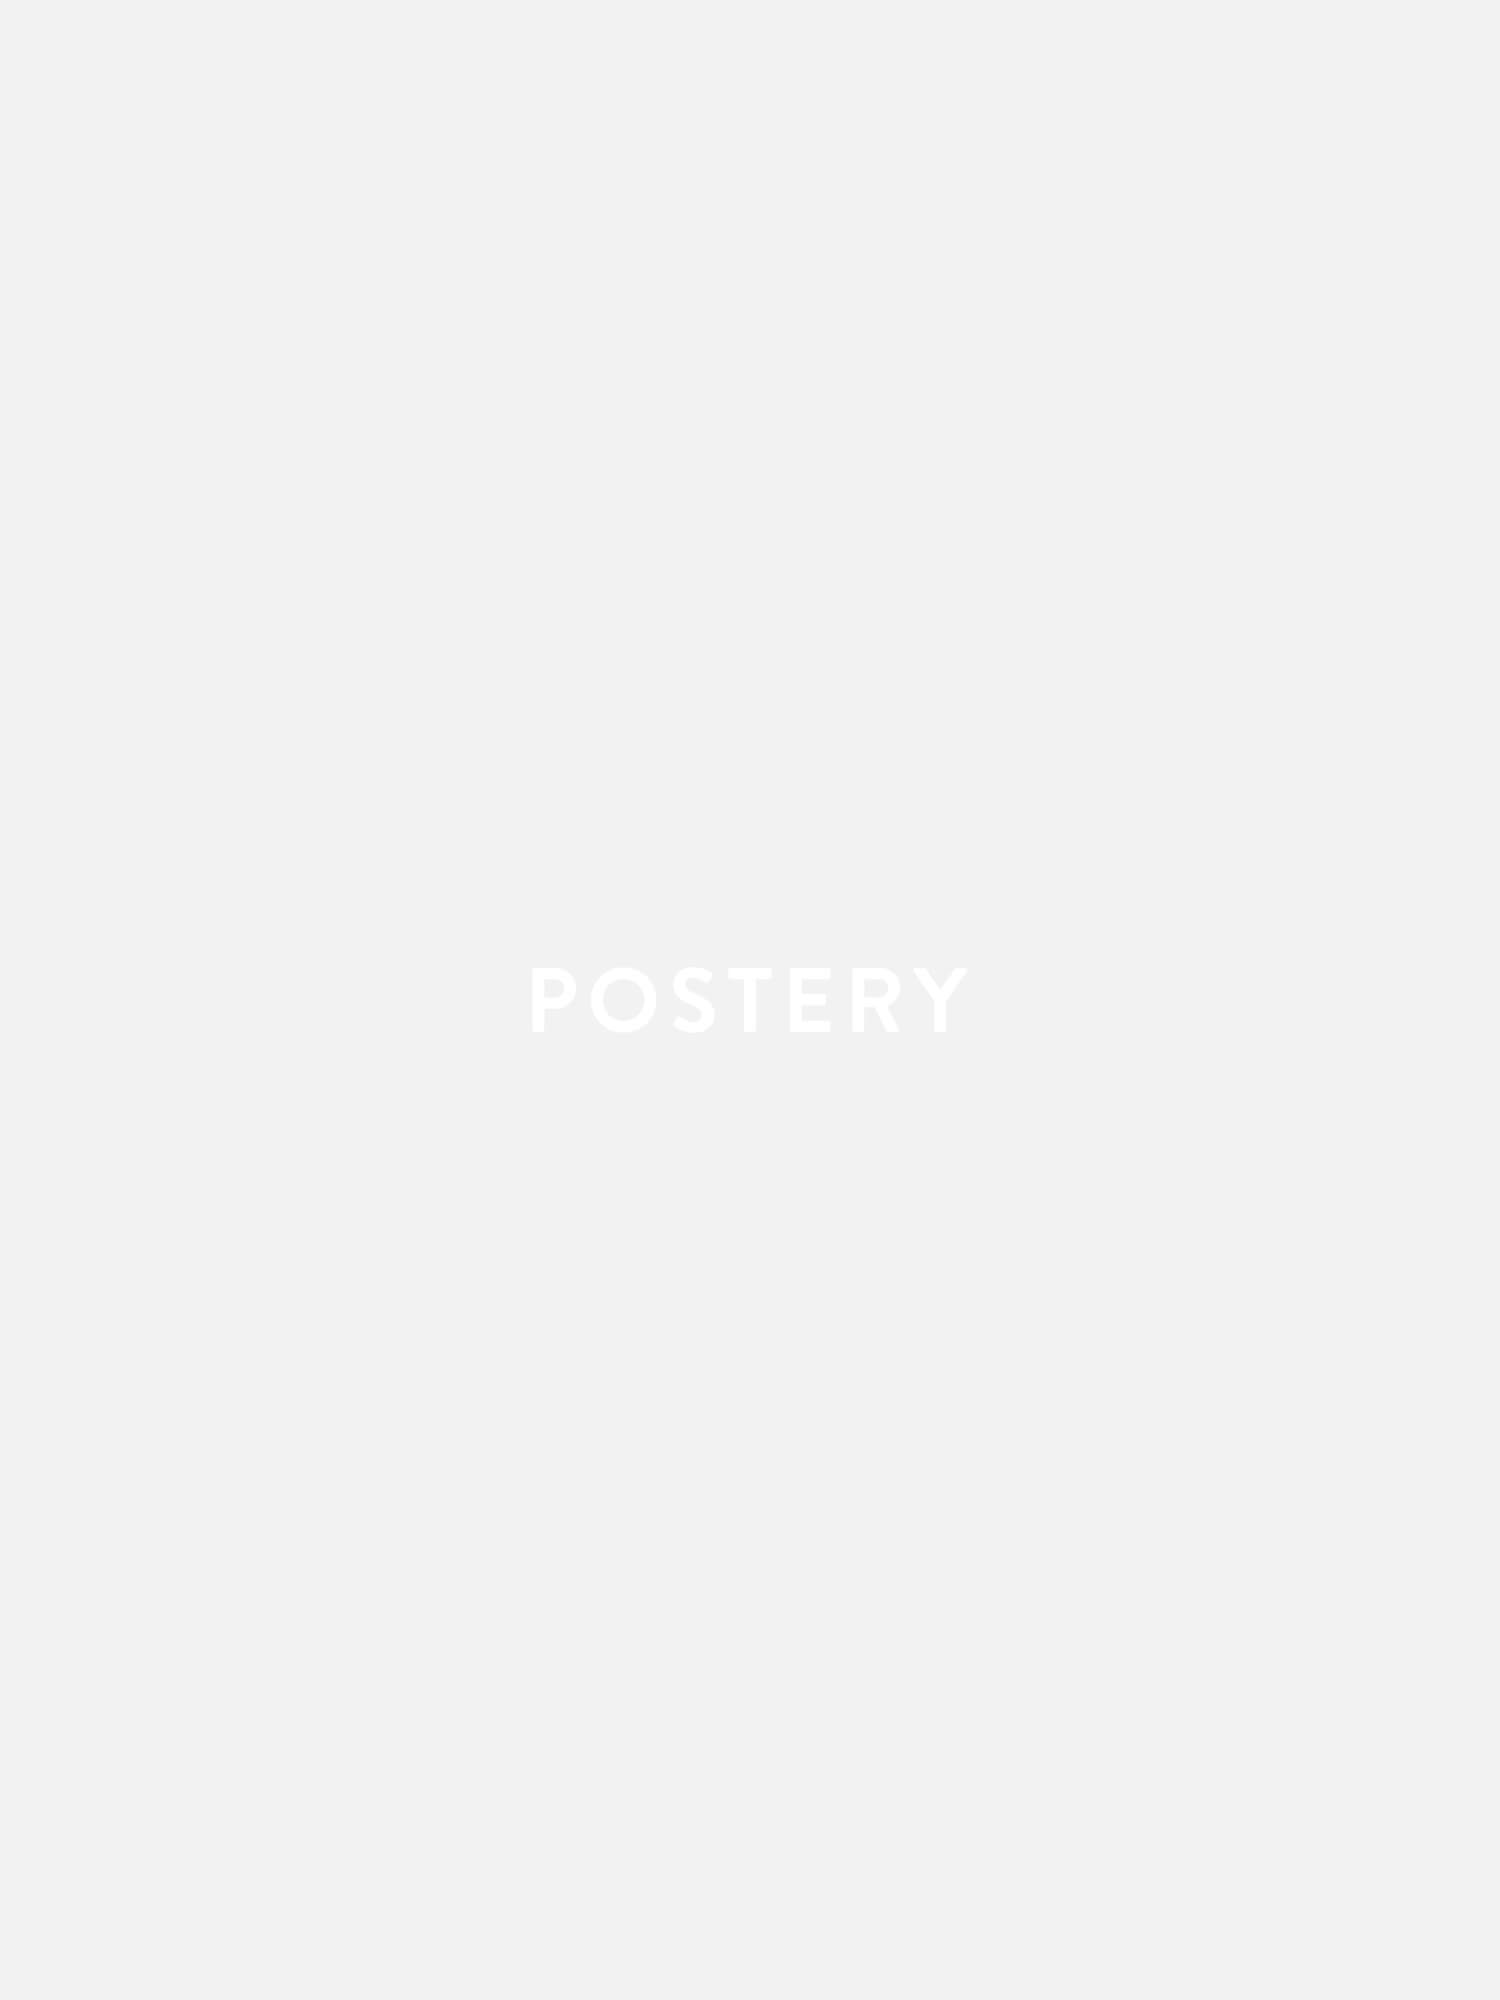 Party Dog no.2 Poster